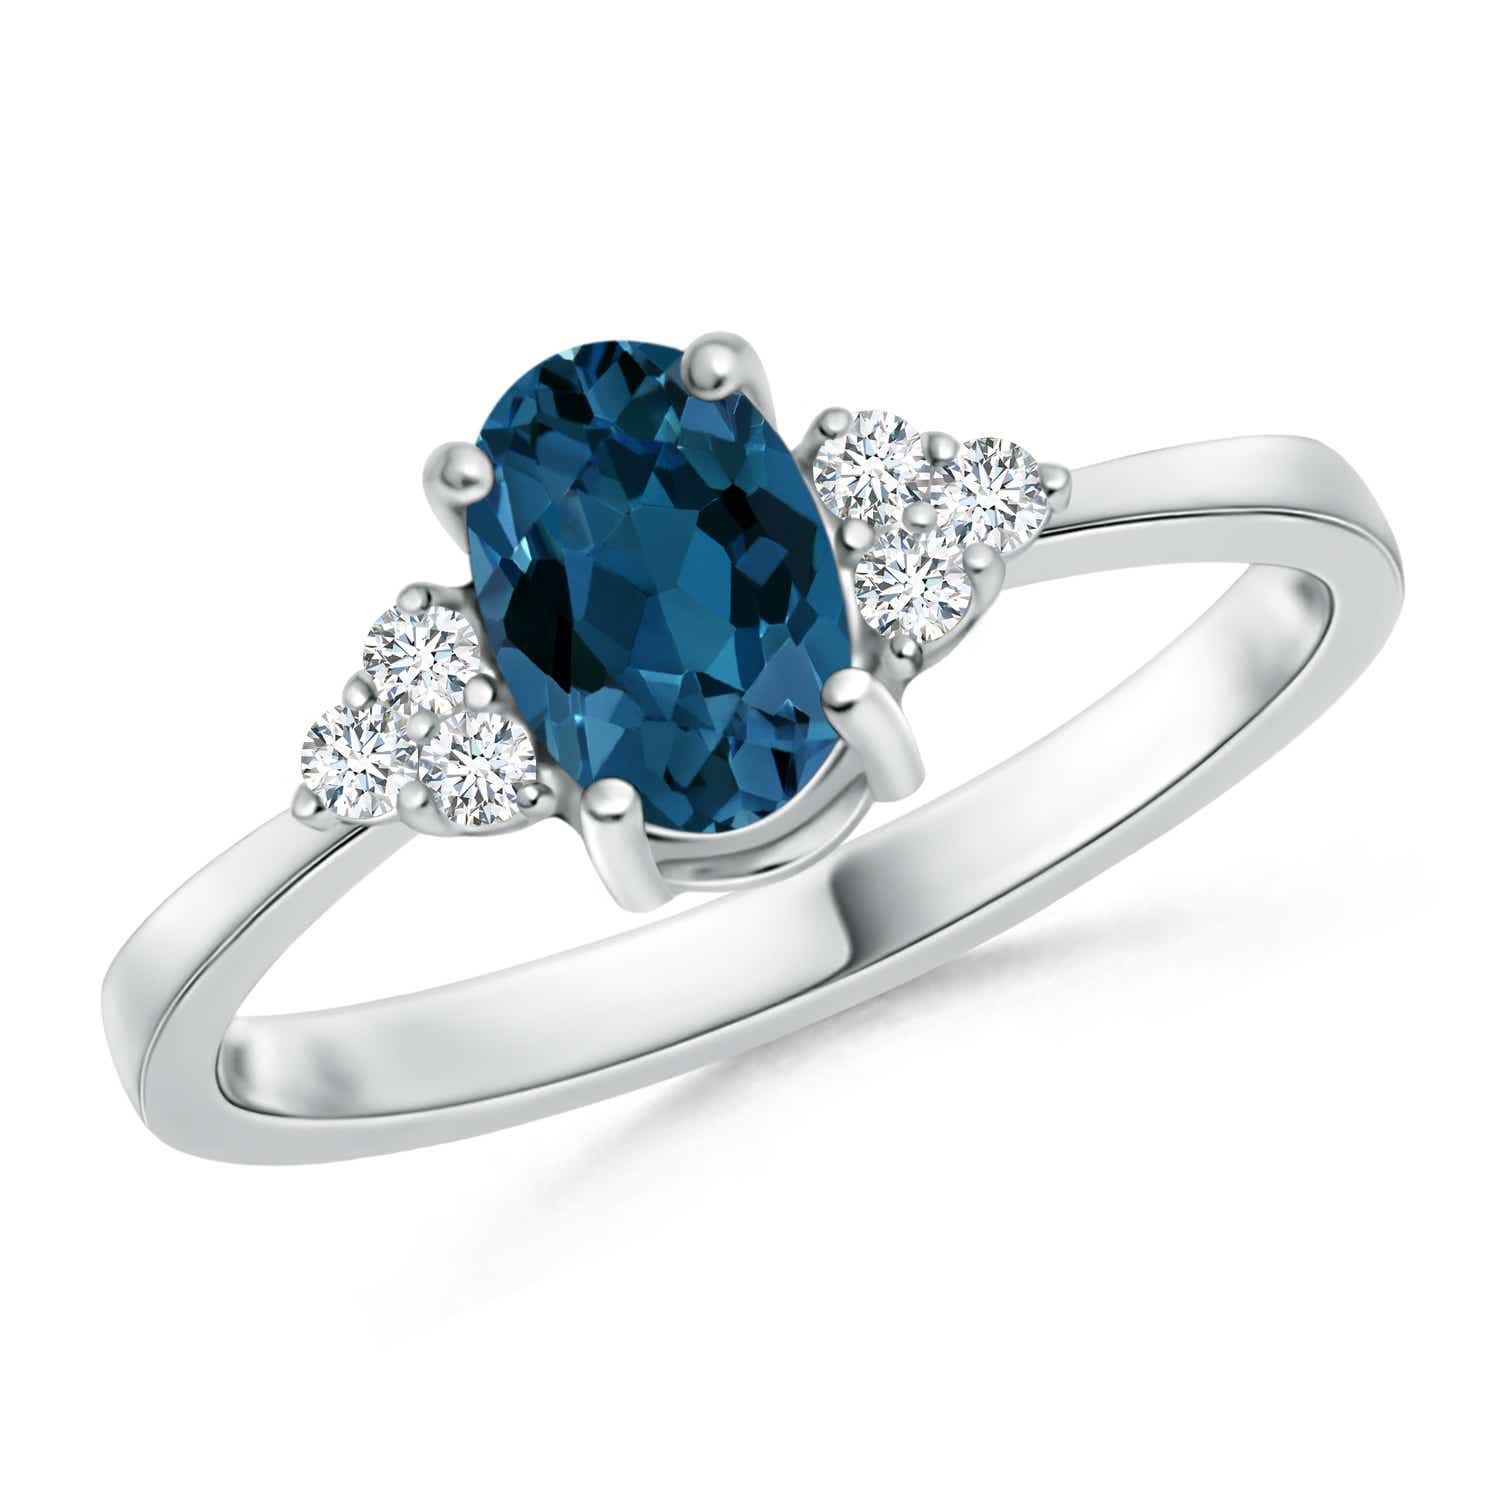 Angara Diamond Natural London Blue Topaz Three Stone Ring in White Gold AoMNz